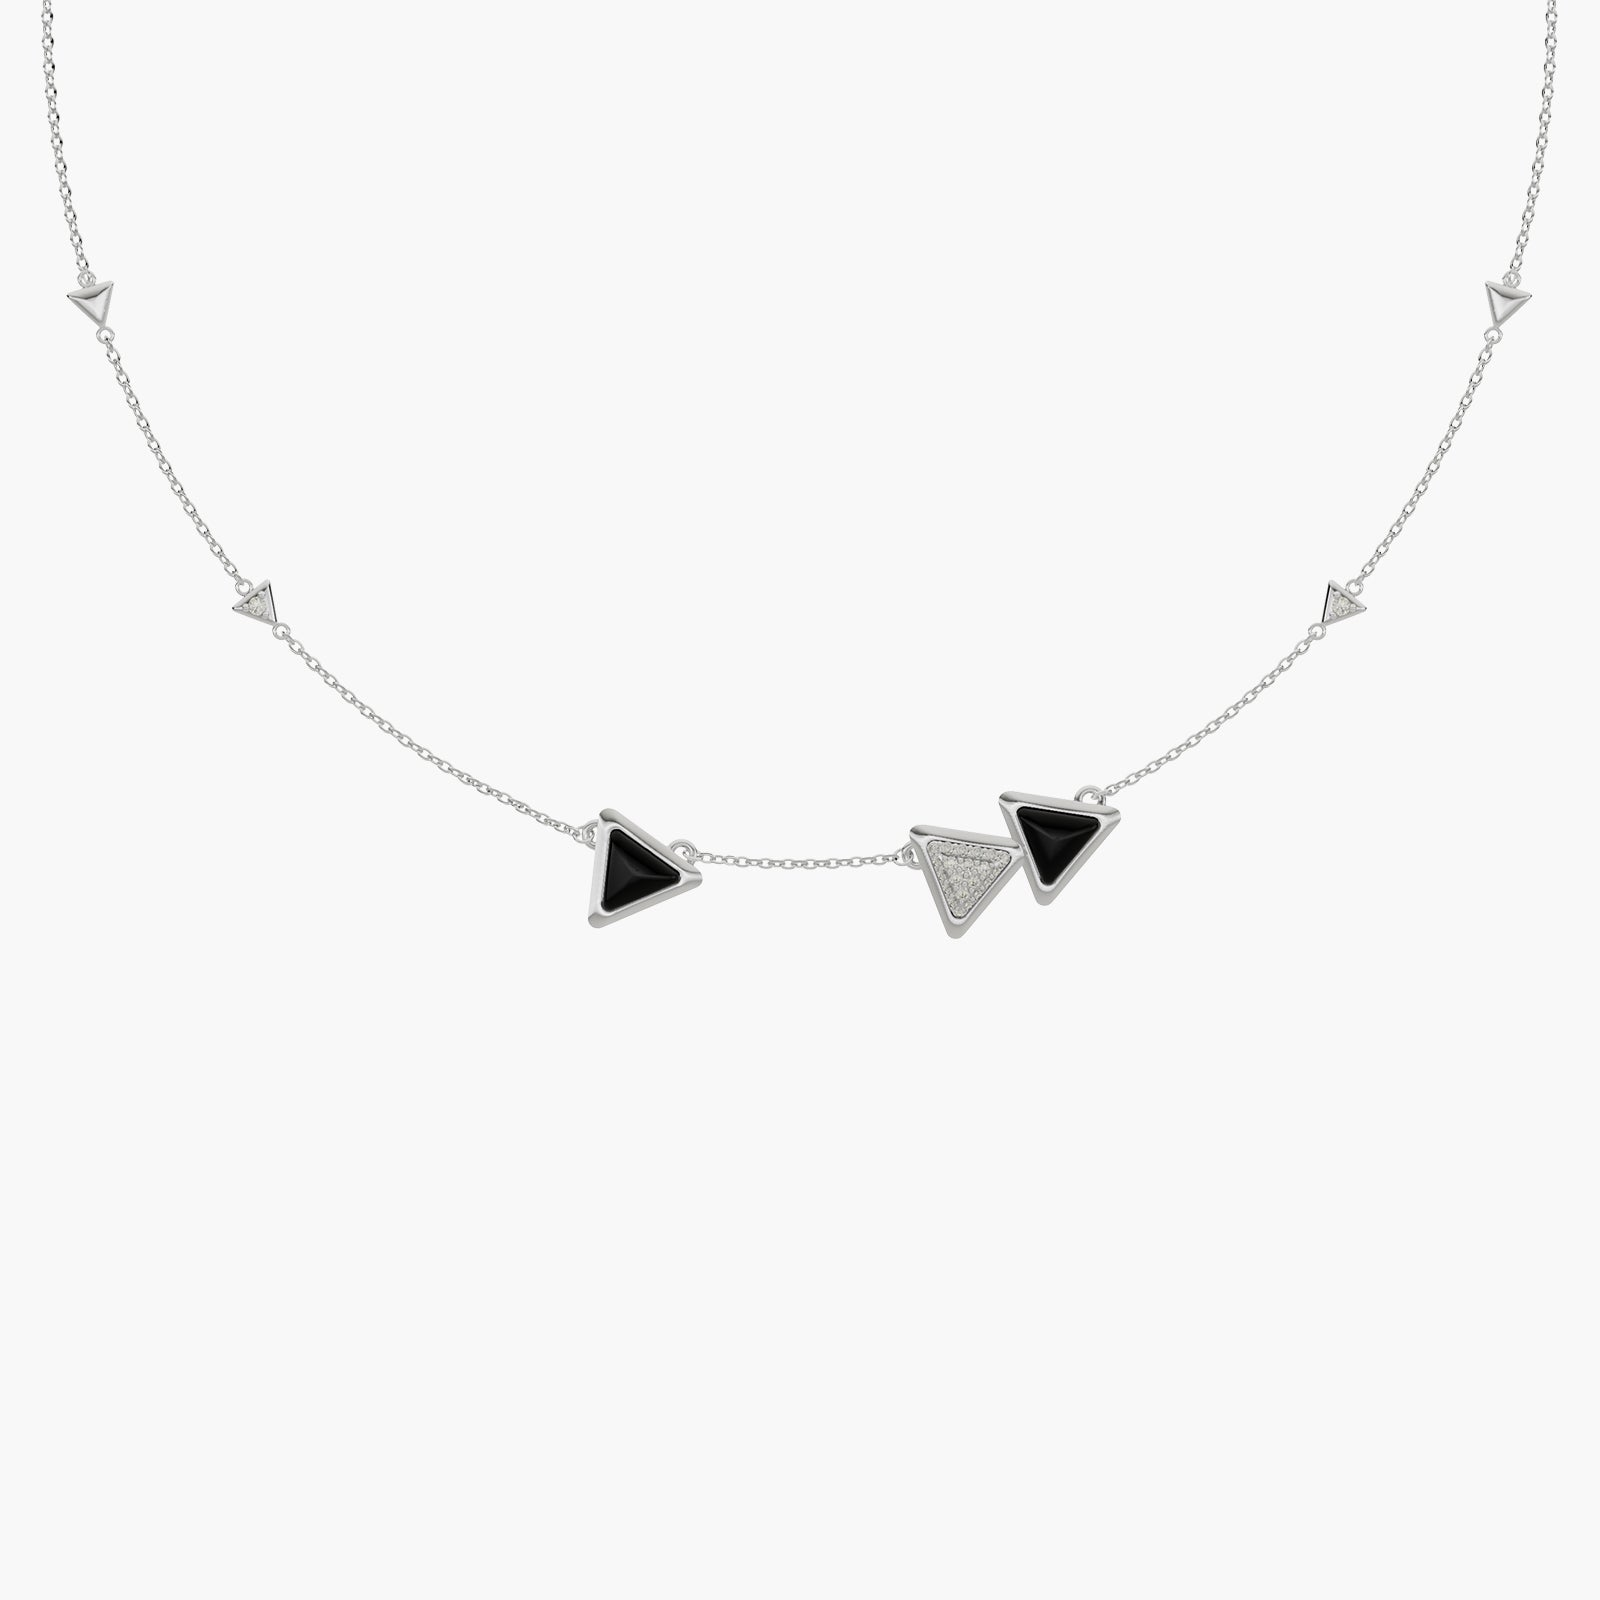 Necklace Dove Vai Forward Exquisite White Gold Onix and Diamonds